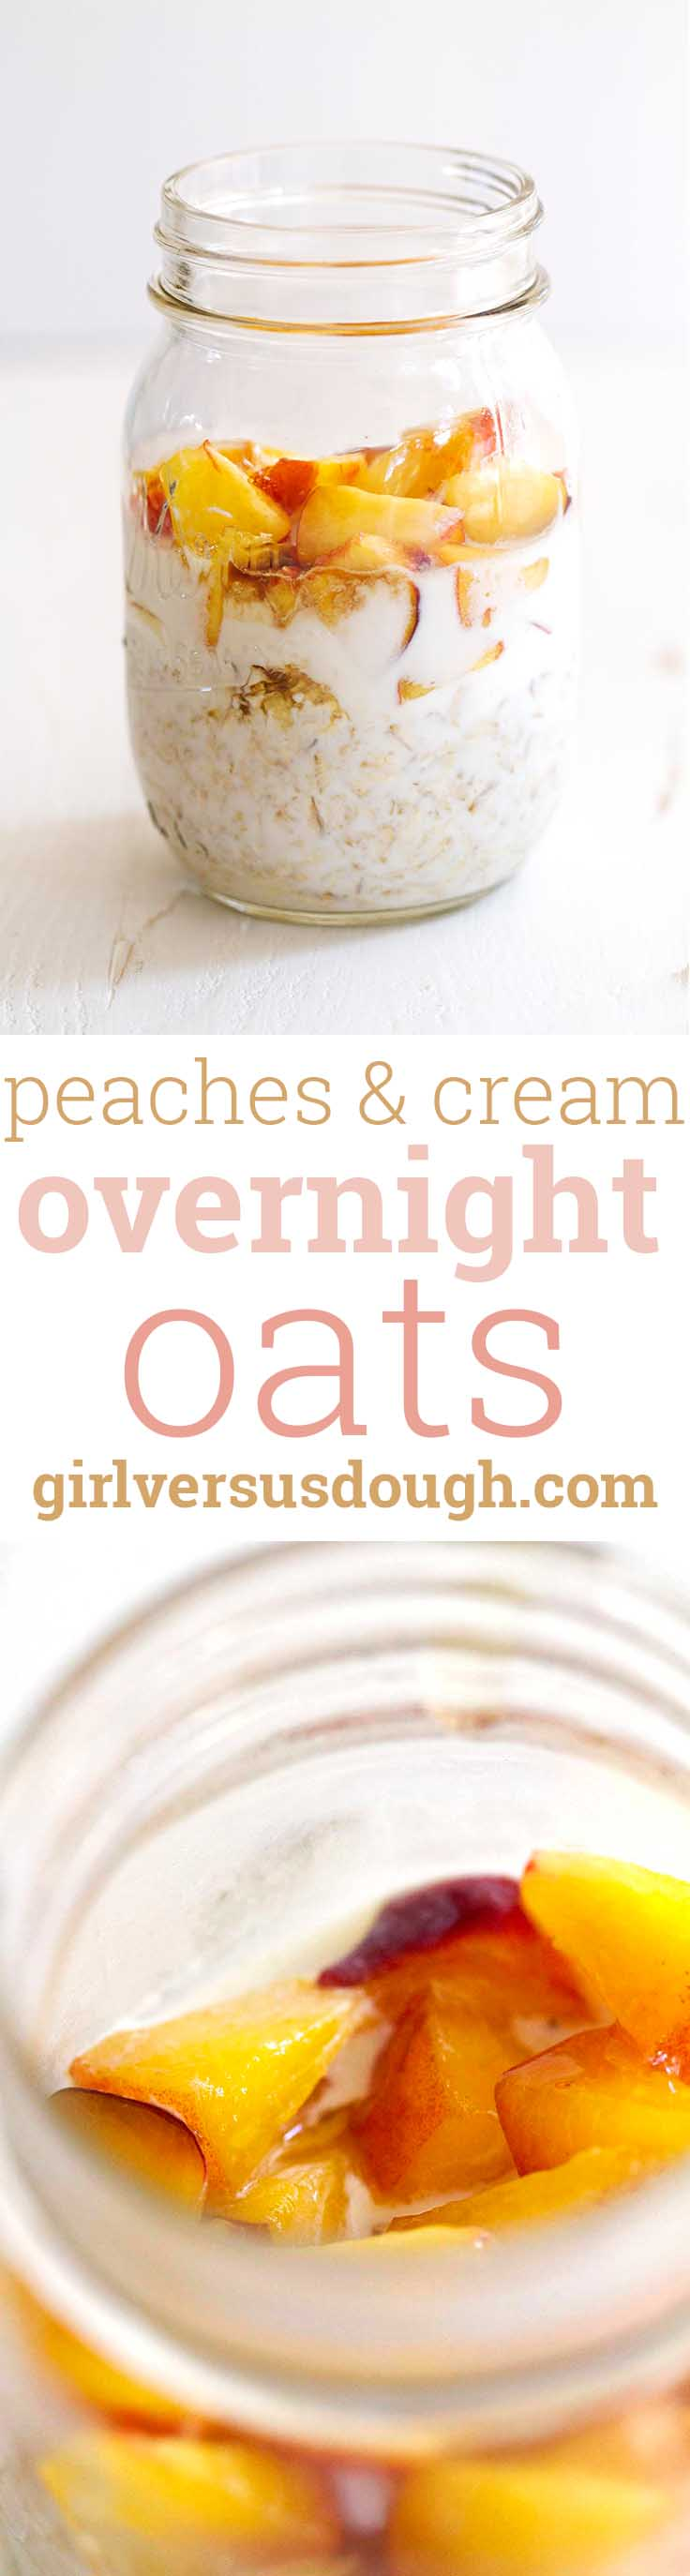 Peaches and Cream Overnight Oats -- A deliciously fresh and easy-to-make breakfast of fresh peaches, cream and oats. girlversusdough.com @girlversusdough